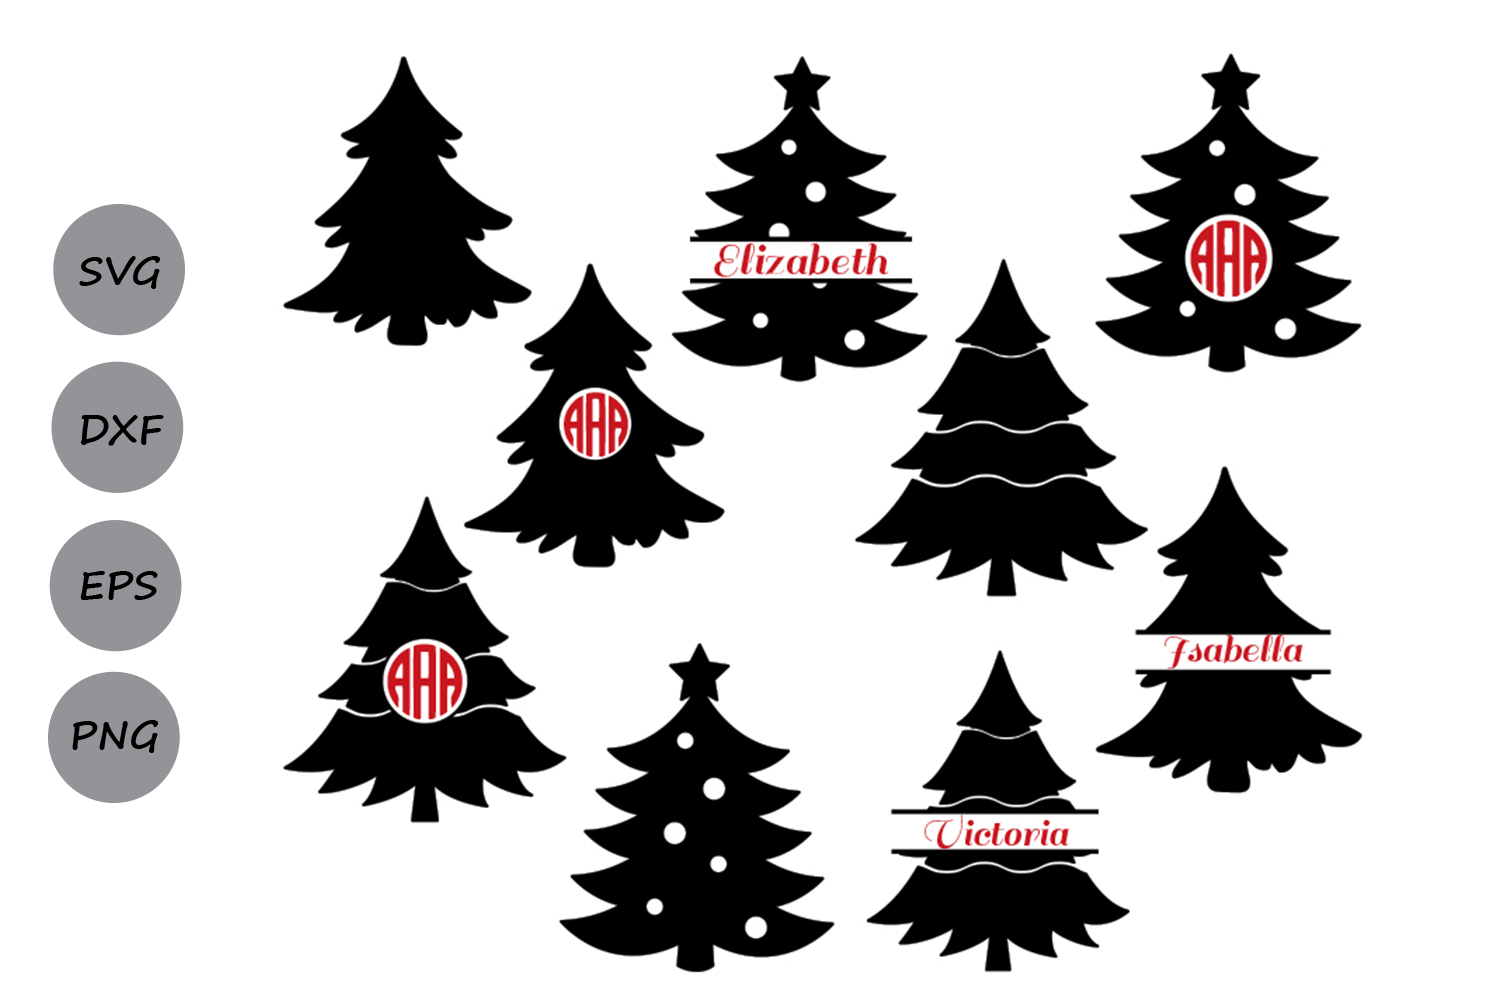 Download Free Christmas Tree Graphic By Cosmosfineart Creative Fabrica for Cricut Explore, Silhouette and other cutting machines.